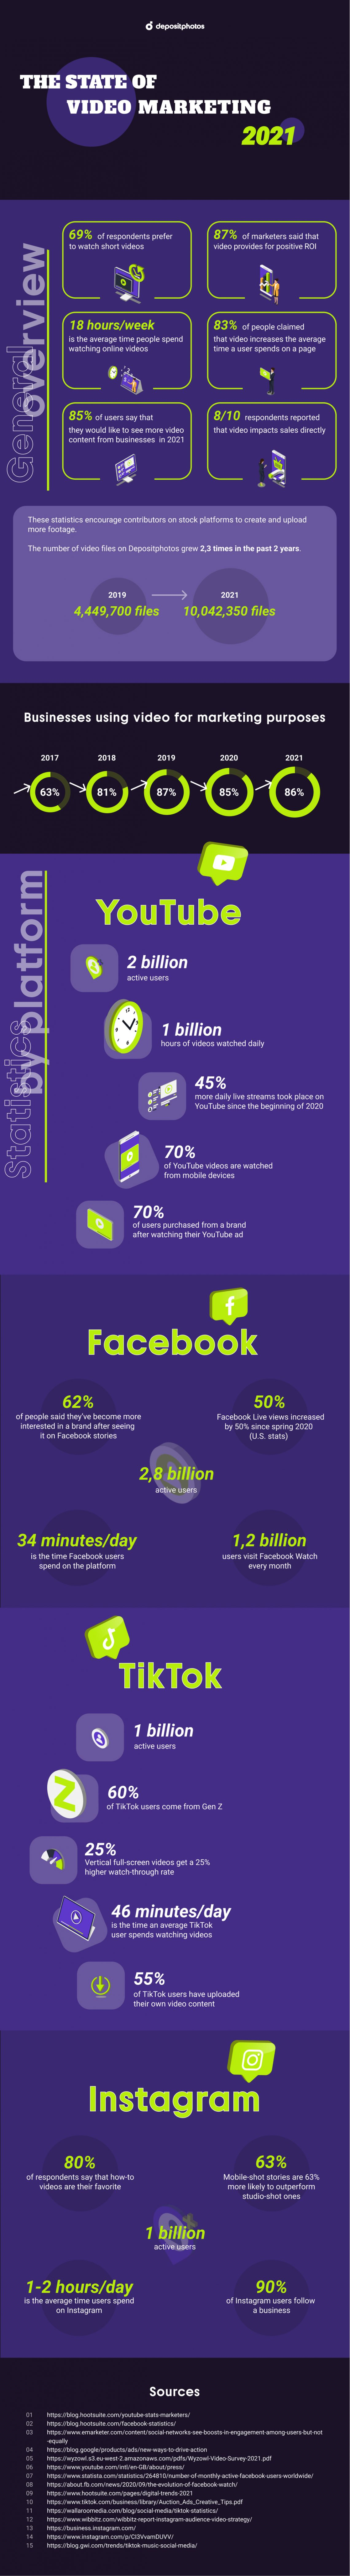 Infographic The State of Video Marketing in 2021